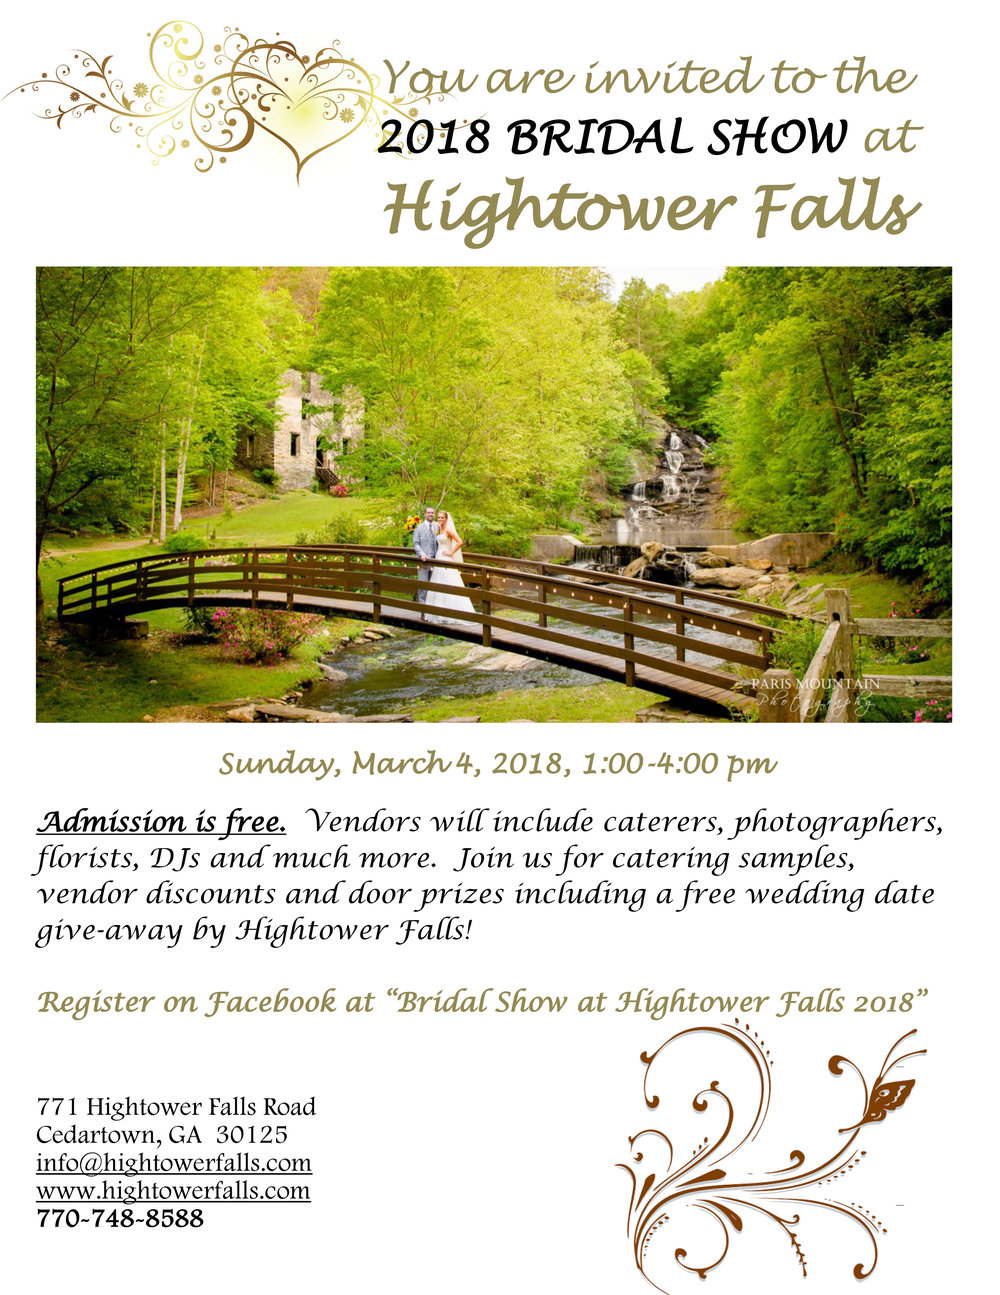 2018 Bridal Show at Hightower Falls